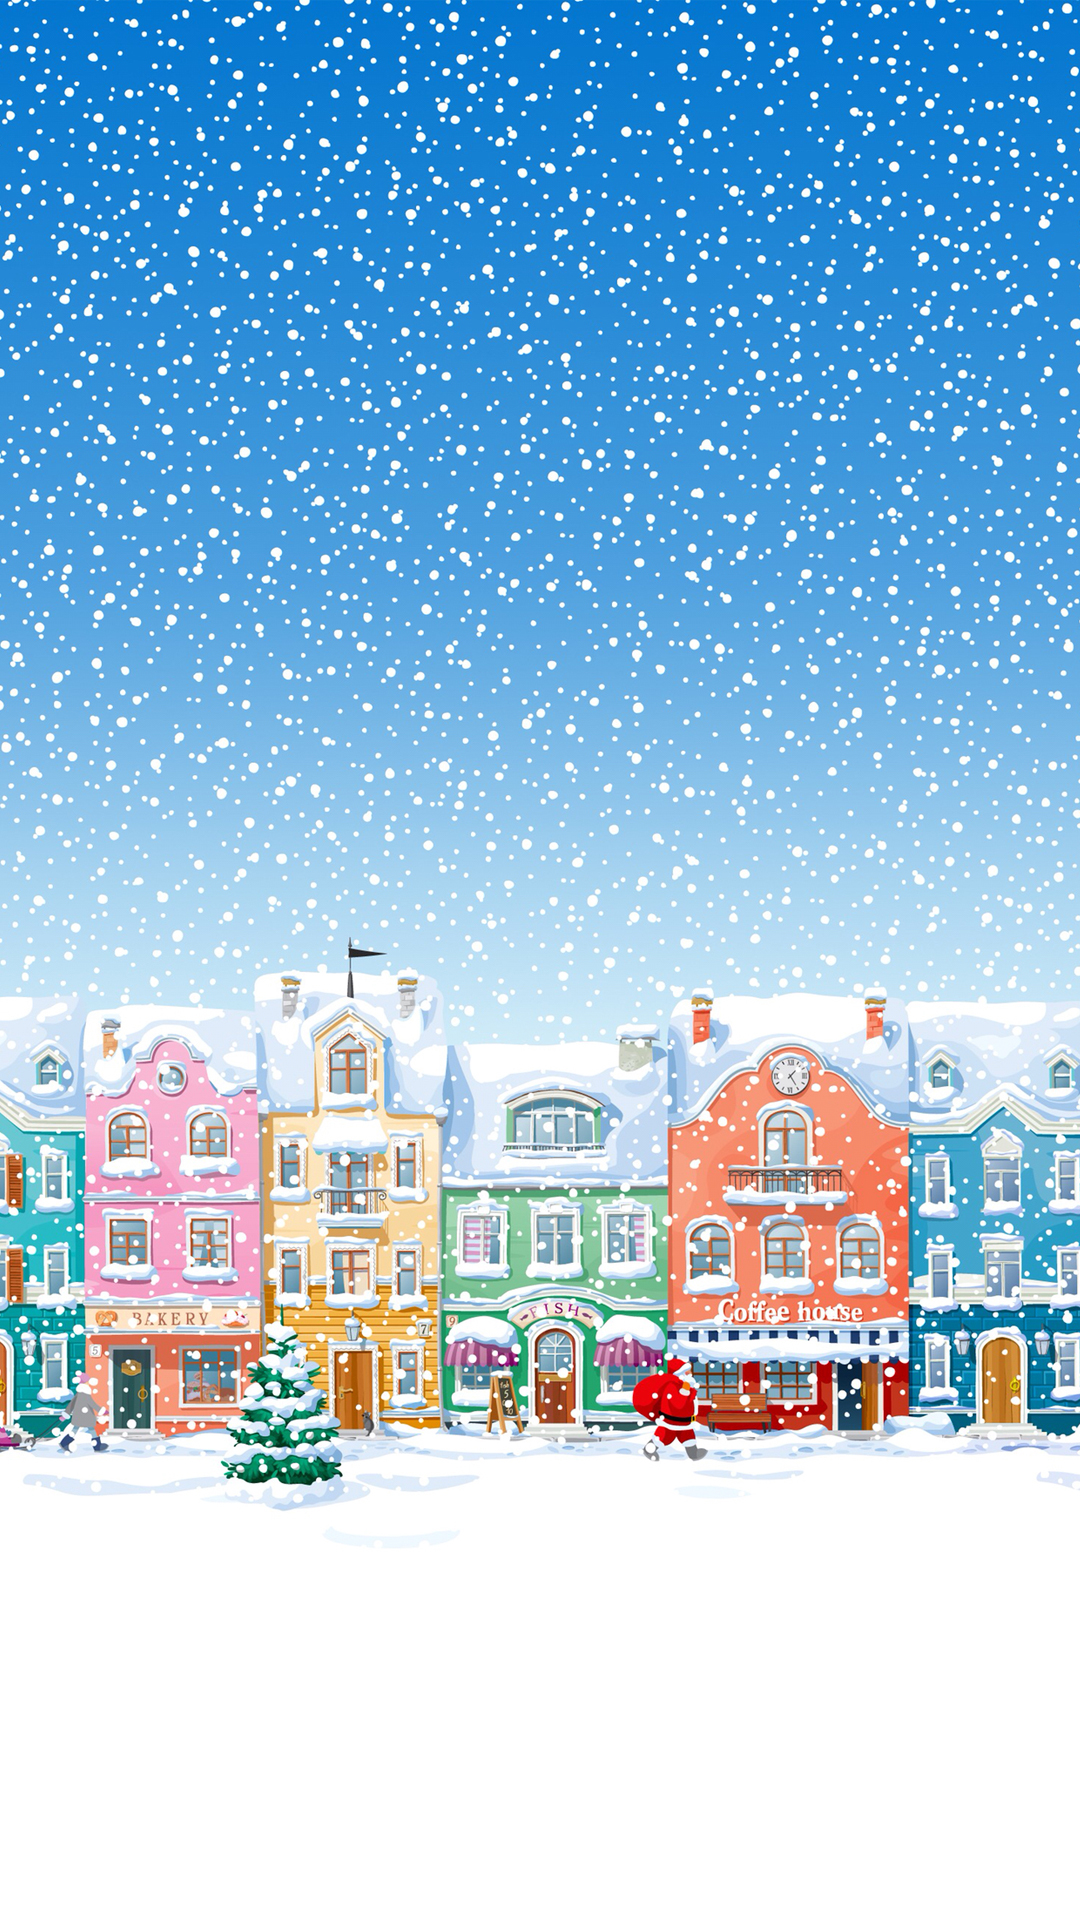 Snowy Town Santa Claus Delivering Christmas Presents Android Wallpaper